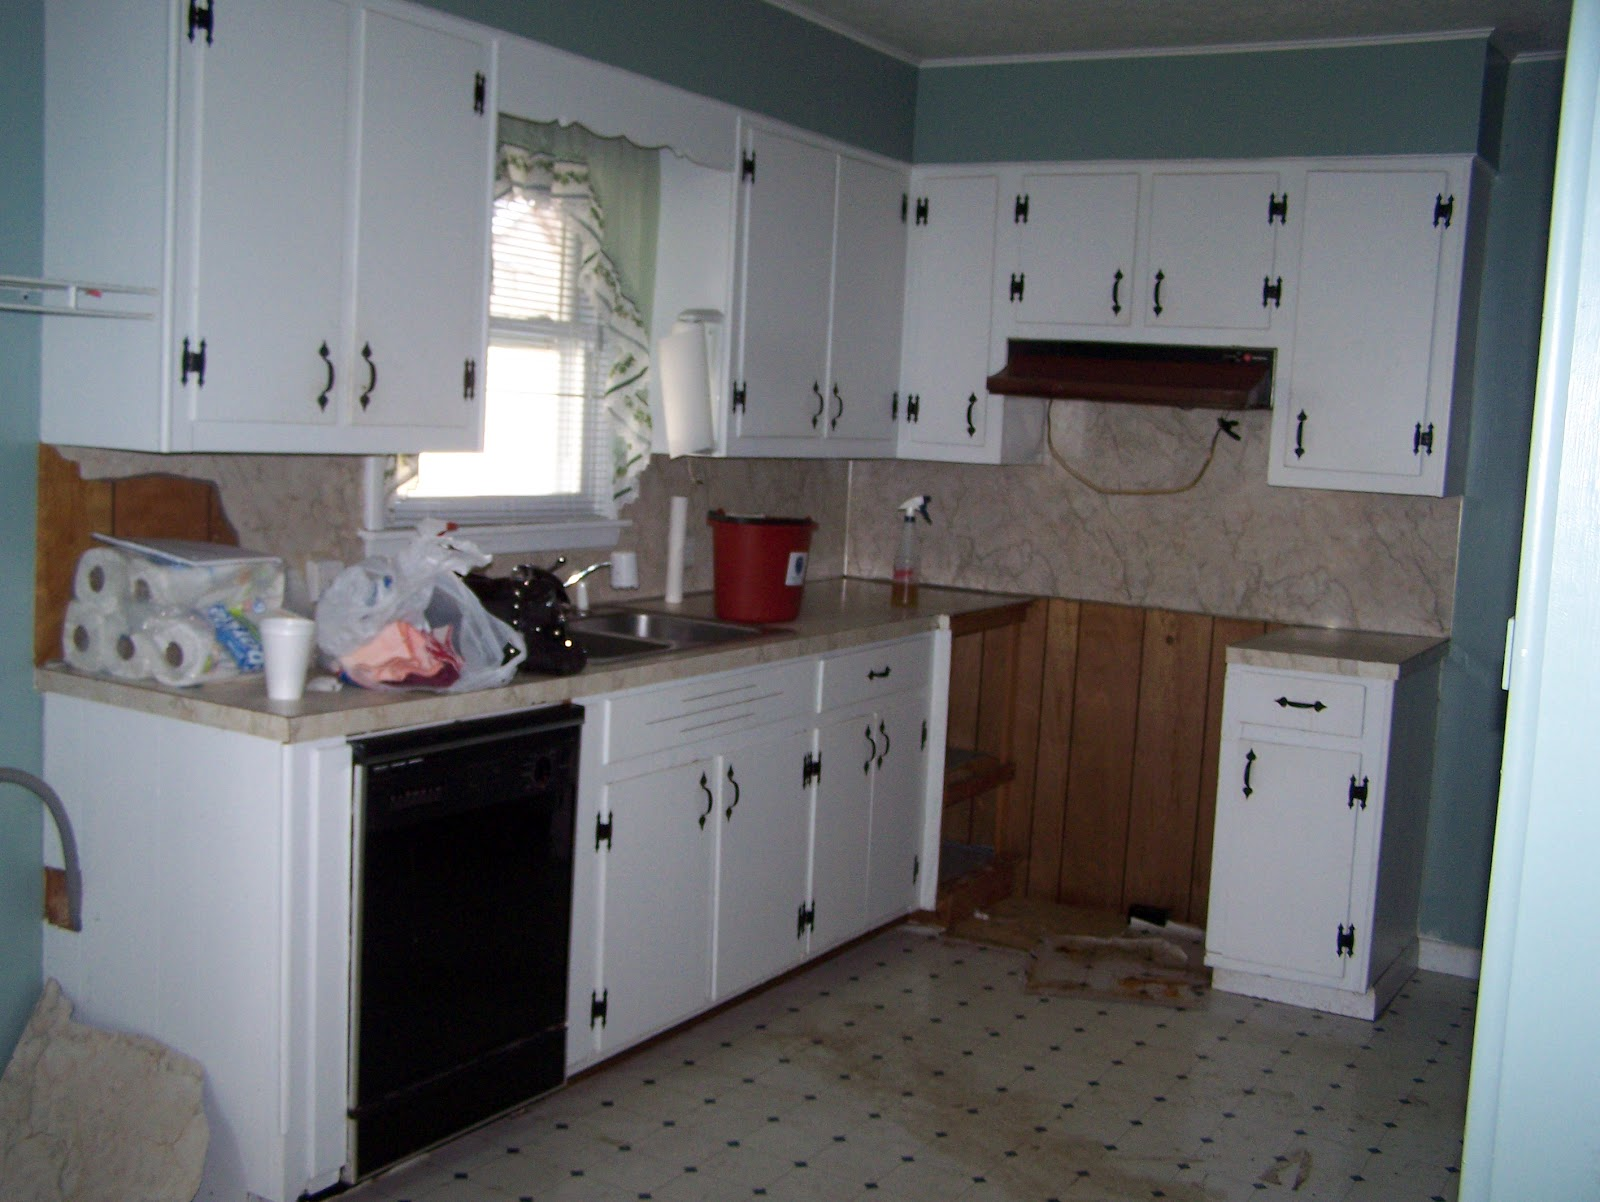 updating old kitchen cabinets with trim kitchen cabinet updates Updating old kitchen cabinets